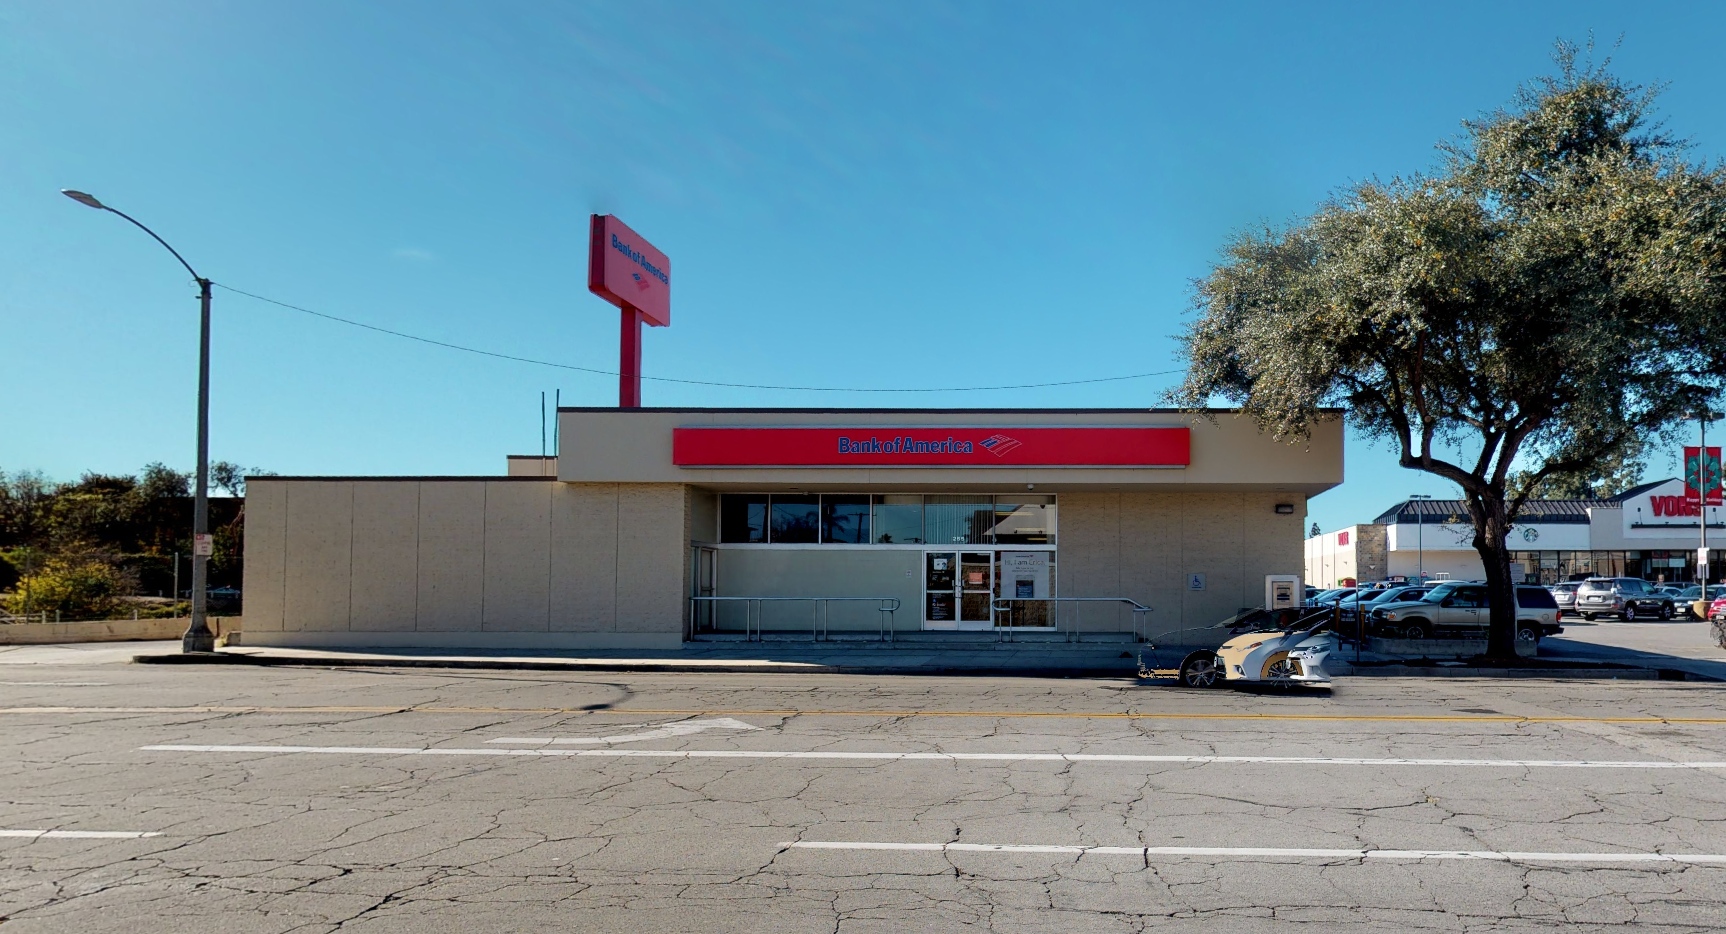 Bank of America financial center with walk-up ATM | 255 N Pass Ave, Burbank, CA 91505